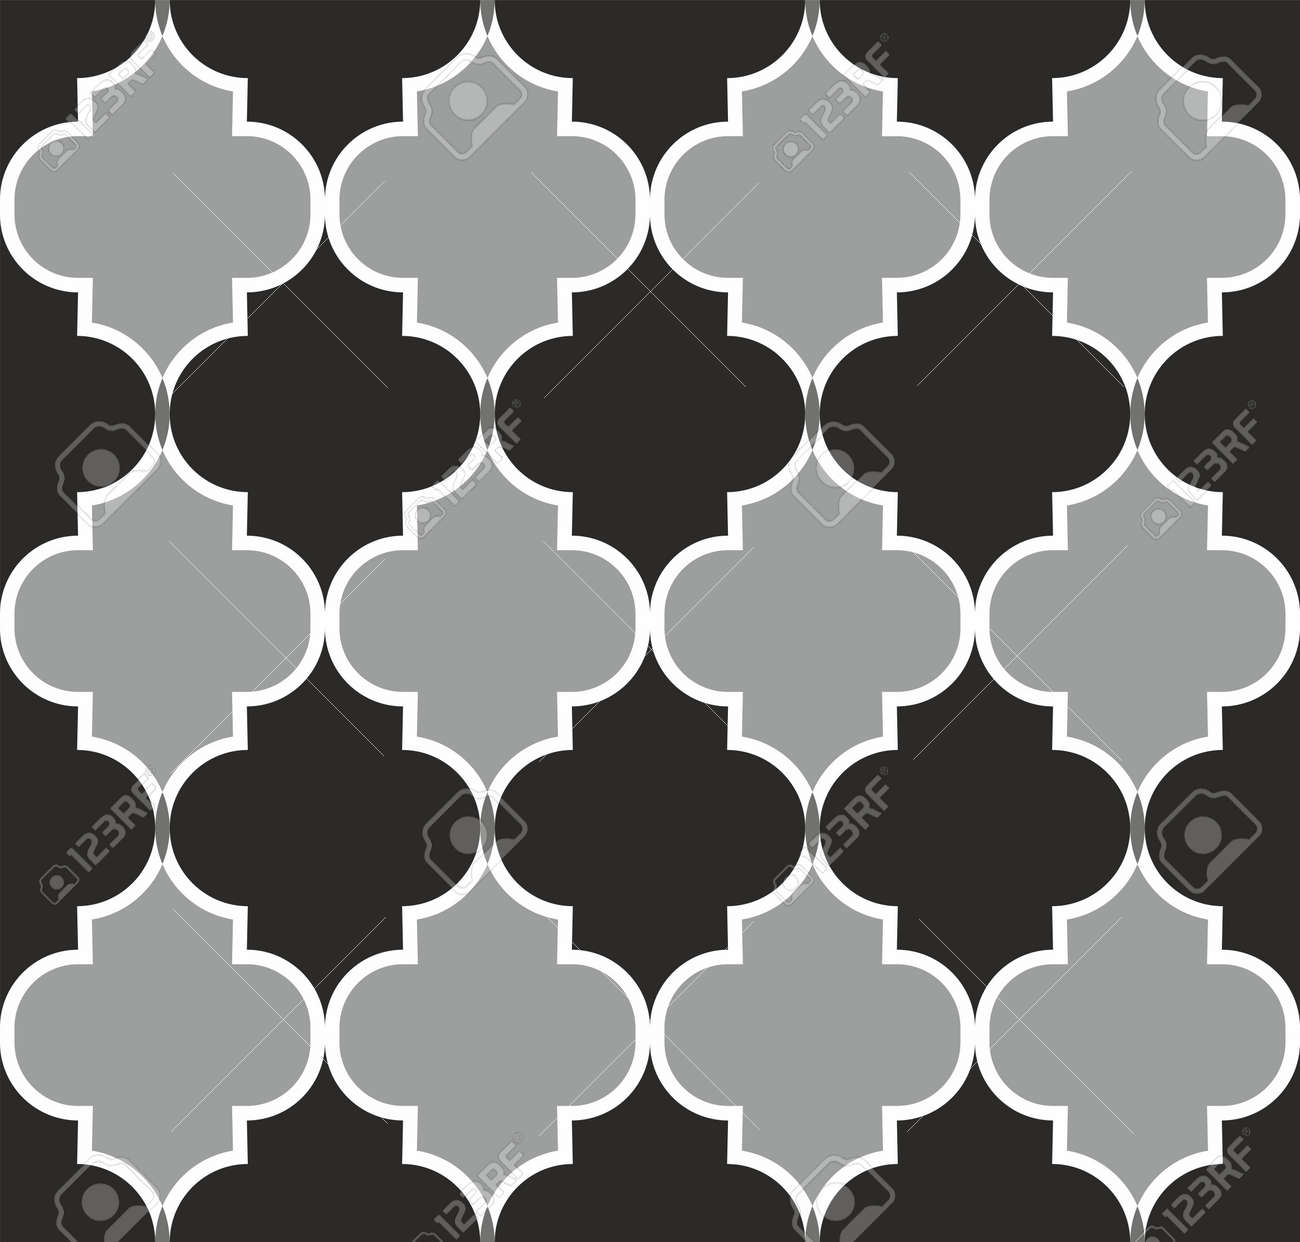 Seamless pattern with ogee ornament. Oriental traditional ornamentation with repeated tile shapes. Moroccan Mosque. Traditional ramadan pattern. Islamic argyle design of lantern lattice shape tiles. - 166422937